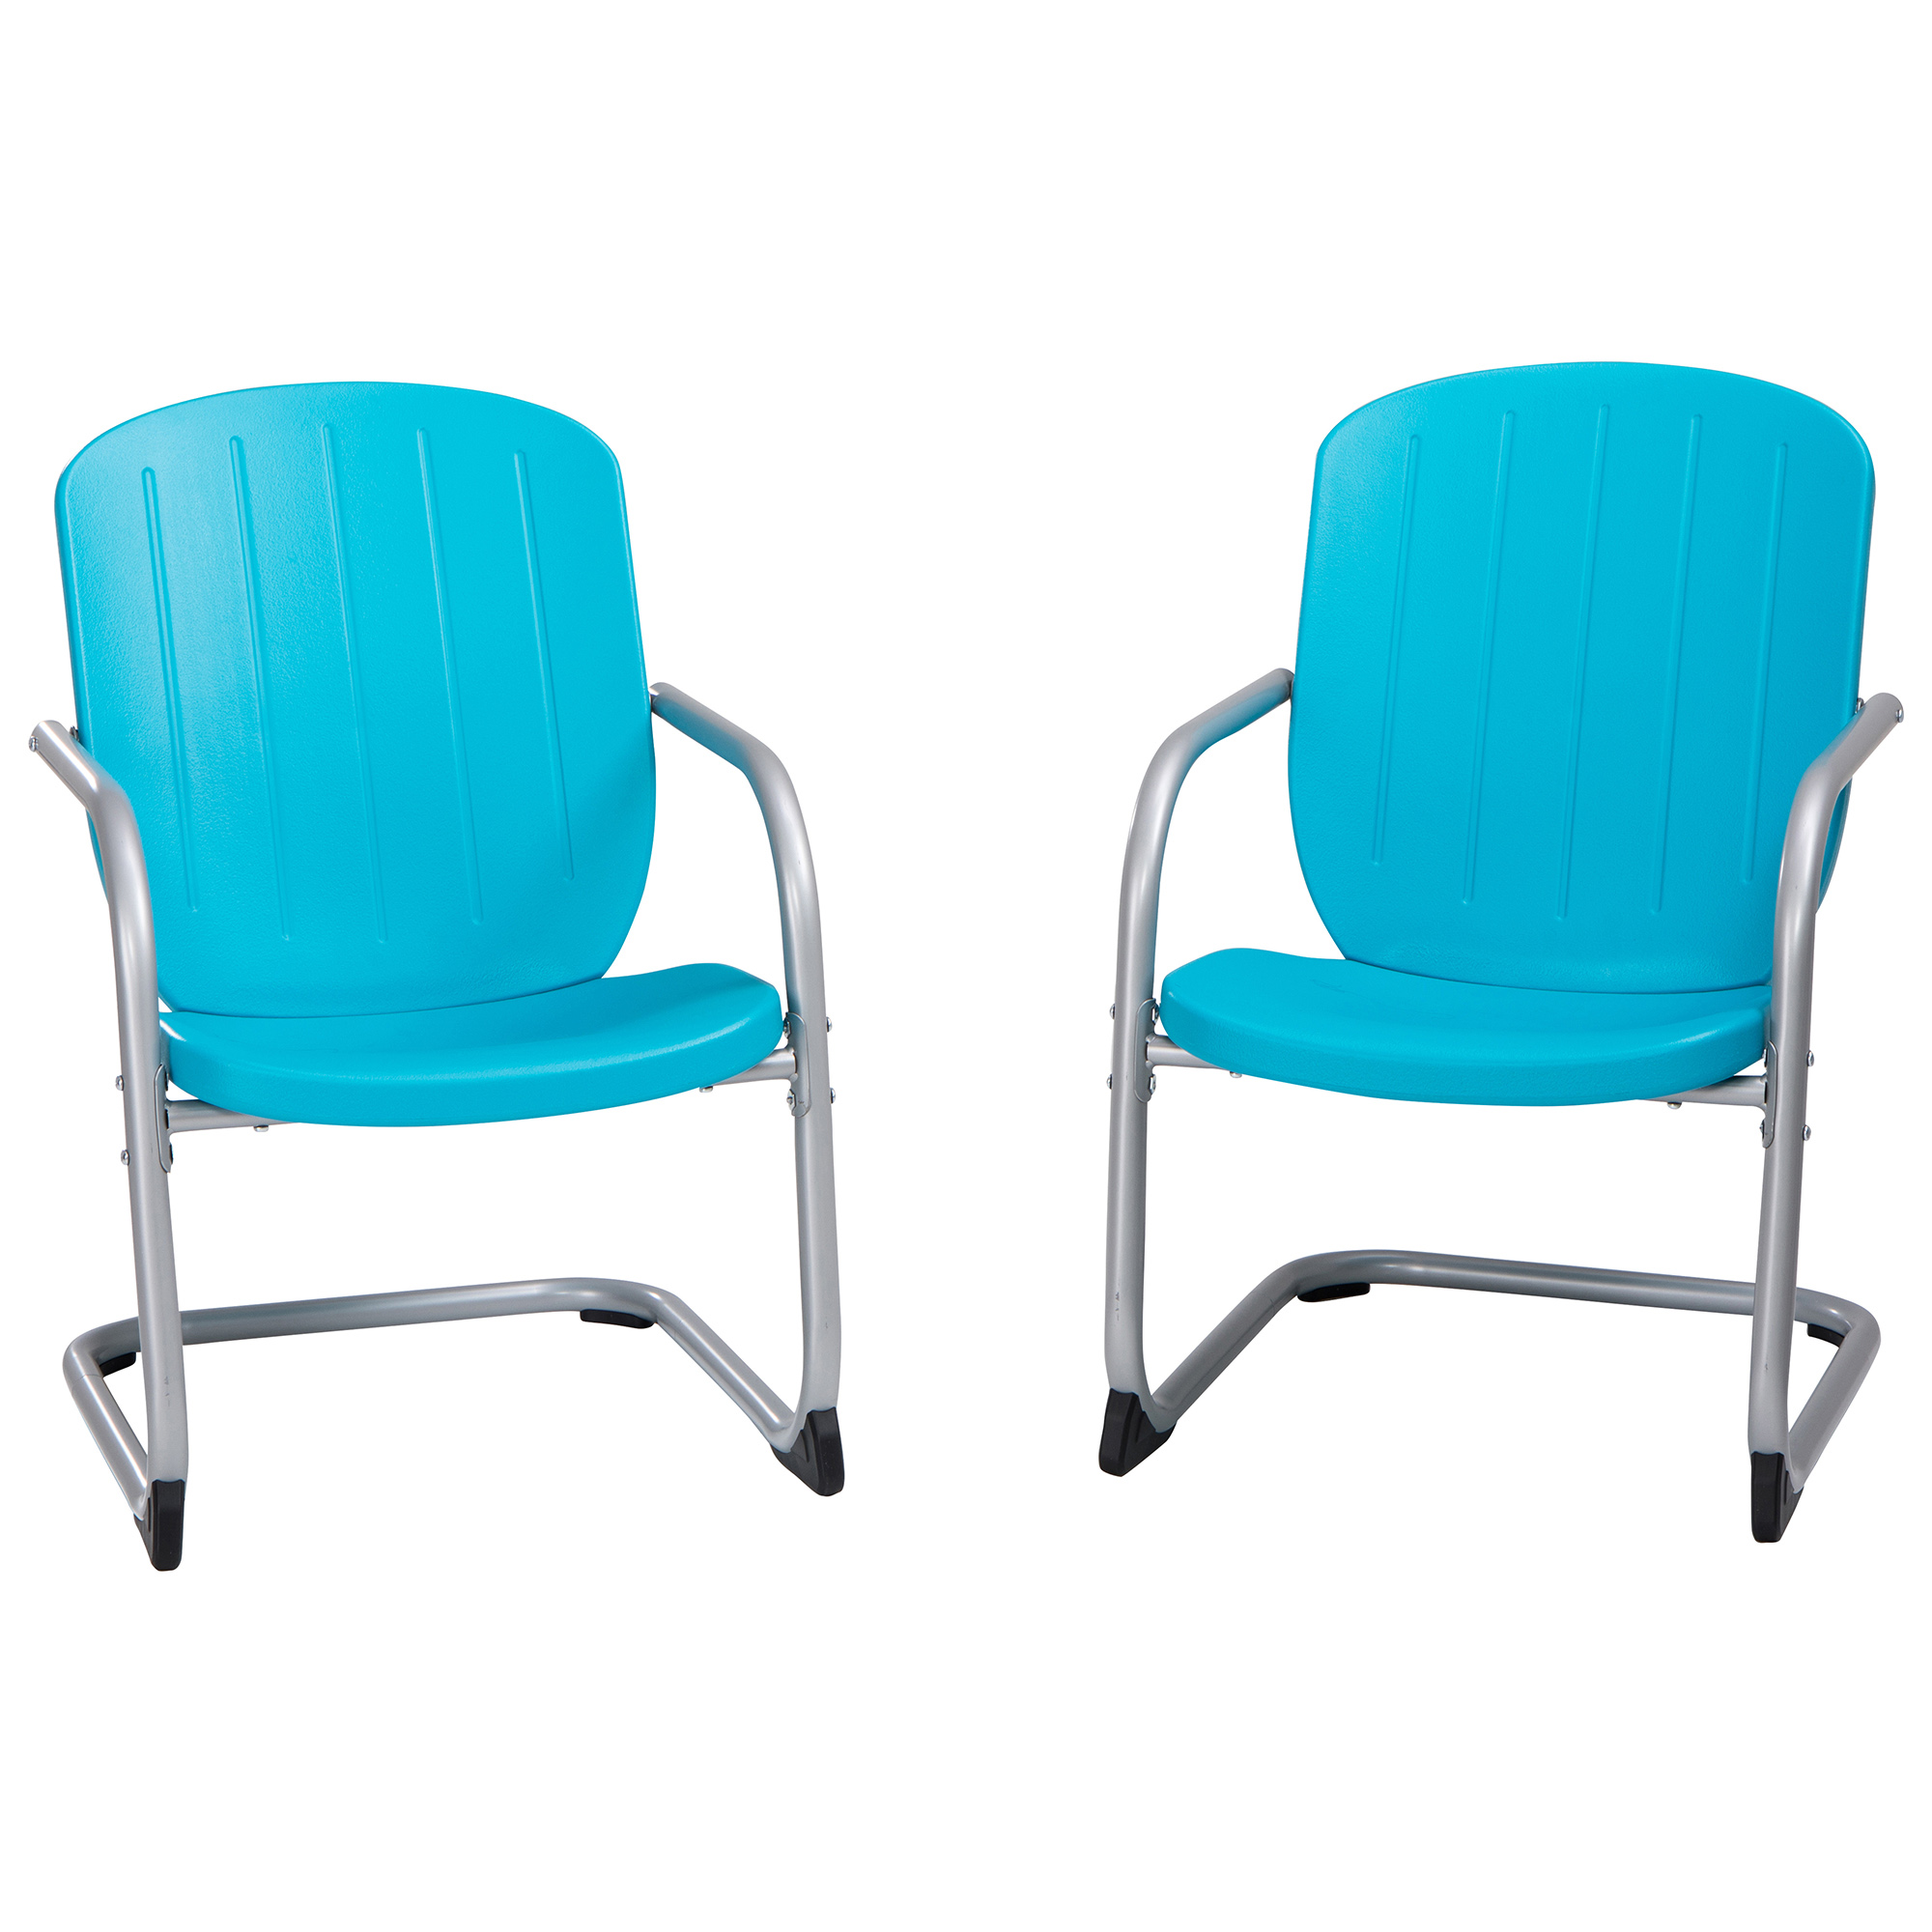 Lifetime Chair Lifetime Retro Patio Chair 2 Pack Blue 60161